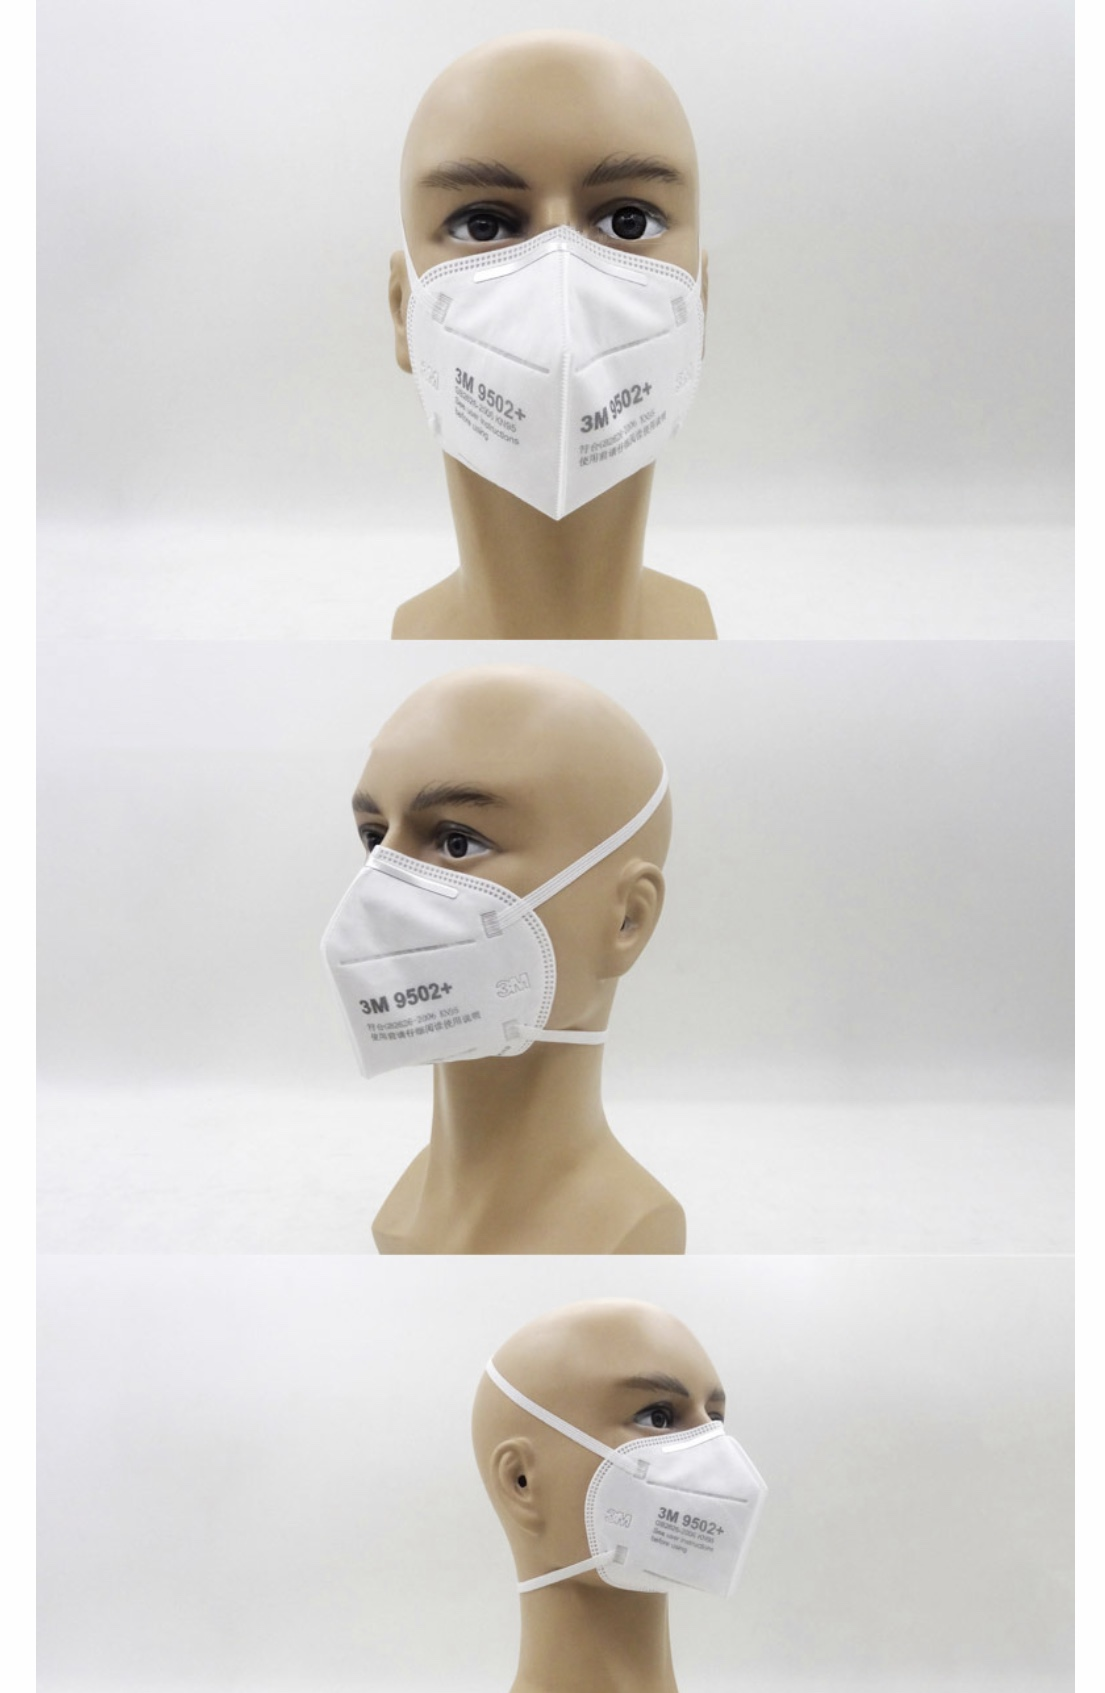 3M 9502+ KN95 Particulate Respirator Face Mask, 50pcs/bag, big sale